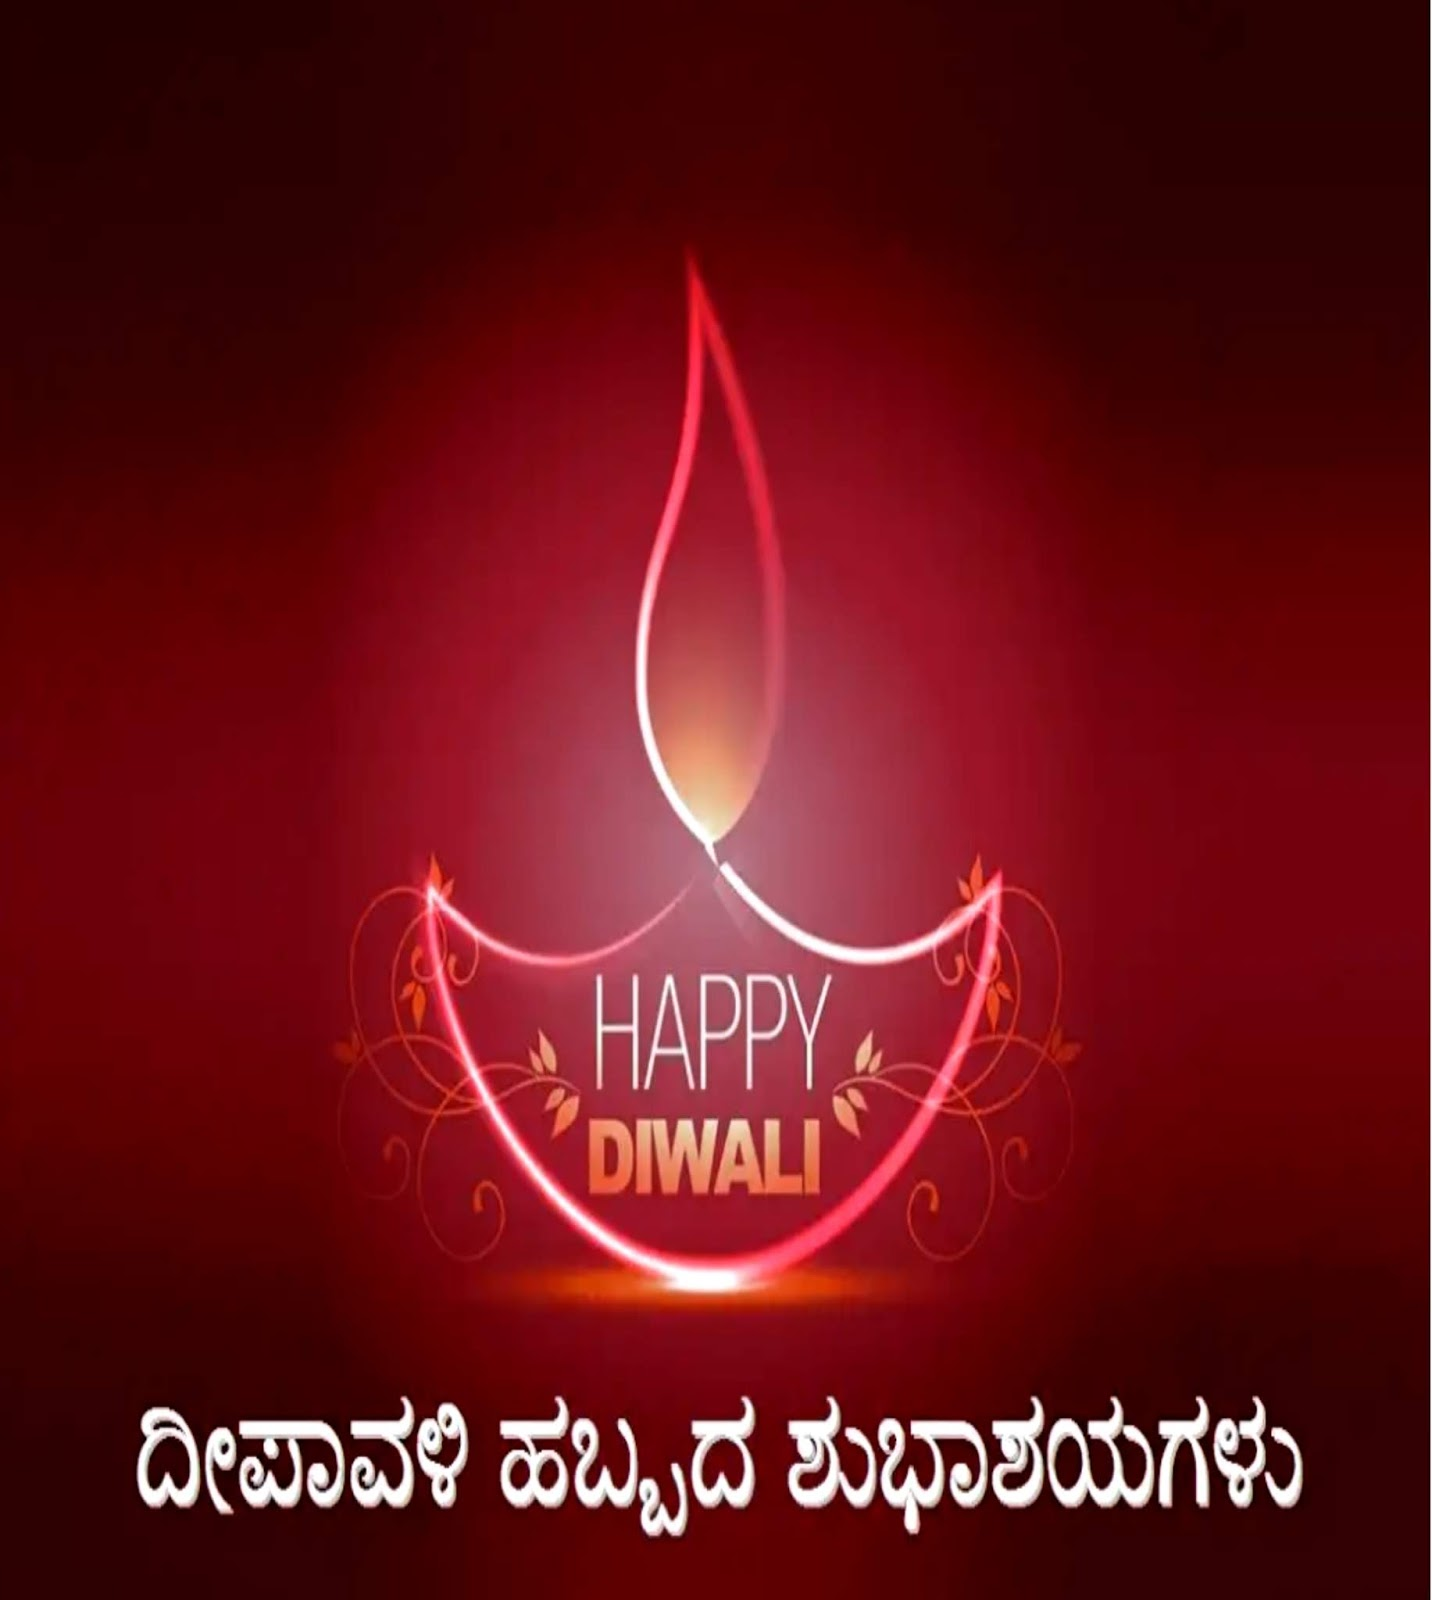 Happy Diwali Greetings In Kannada 2018 Free Download Hd